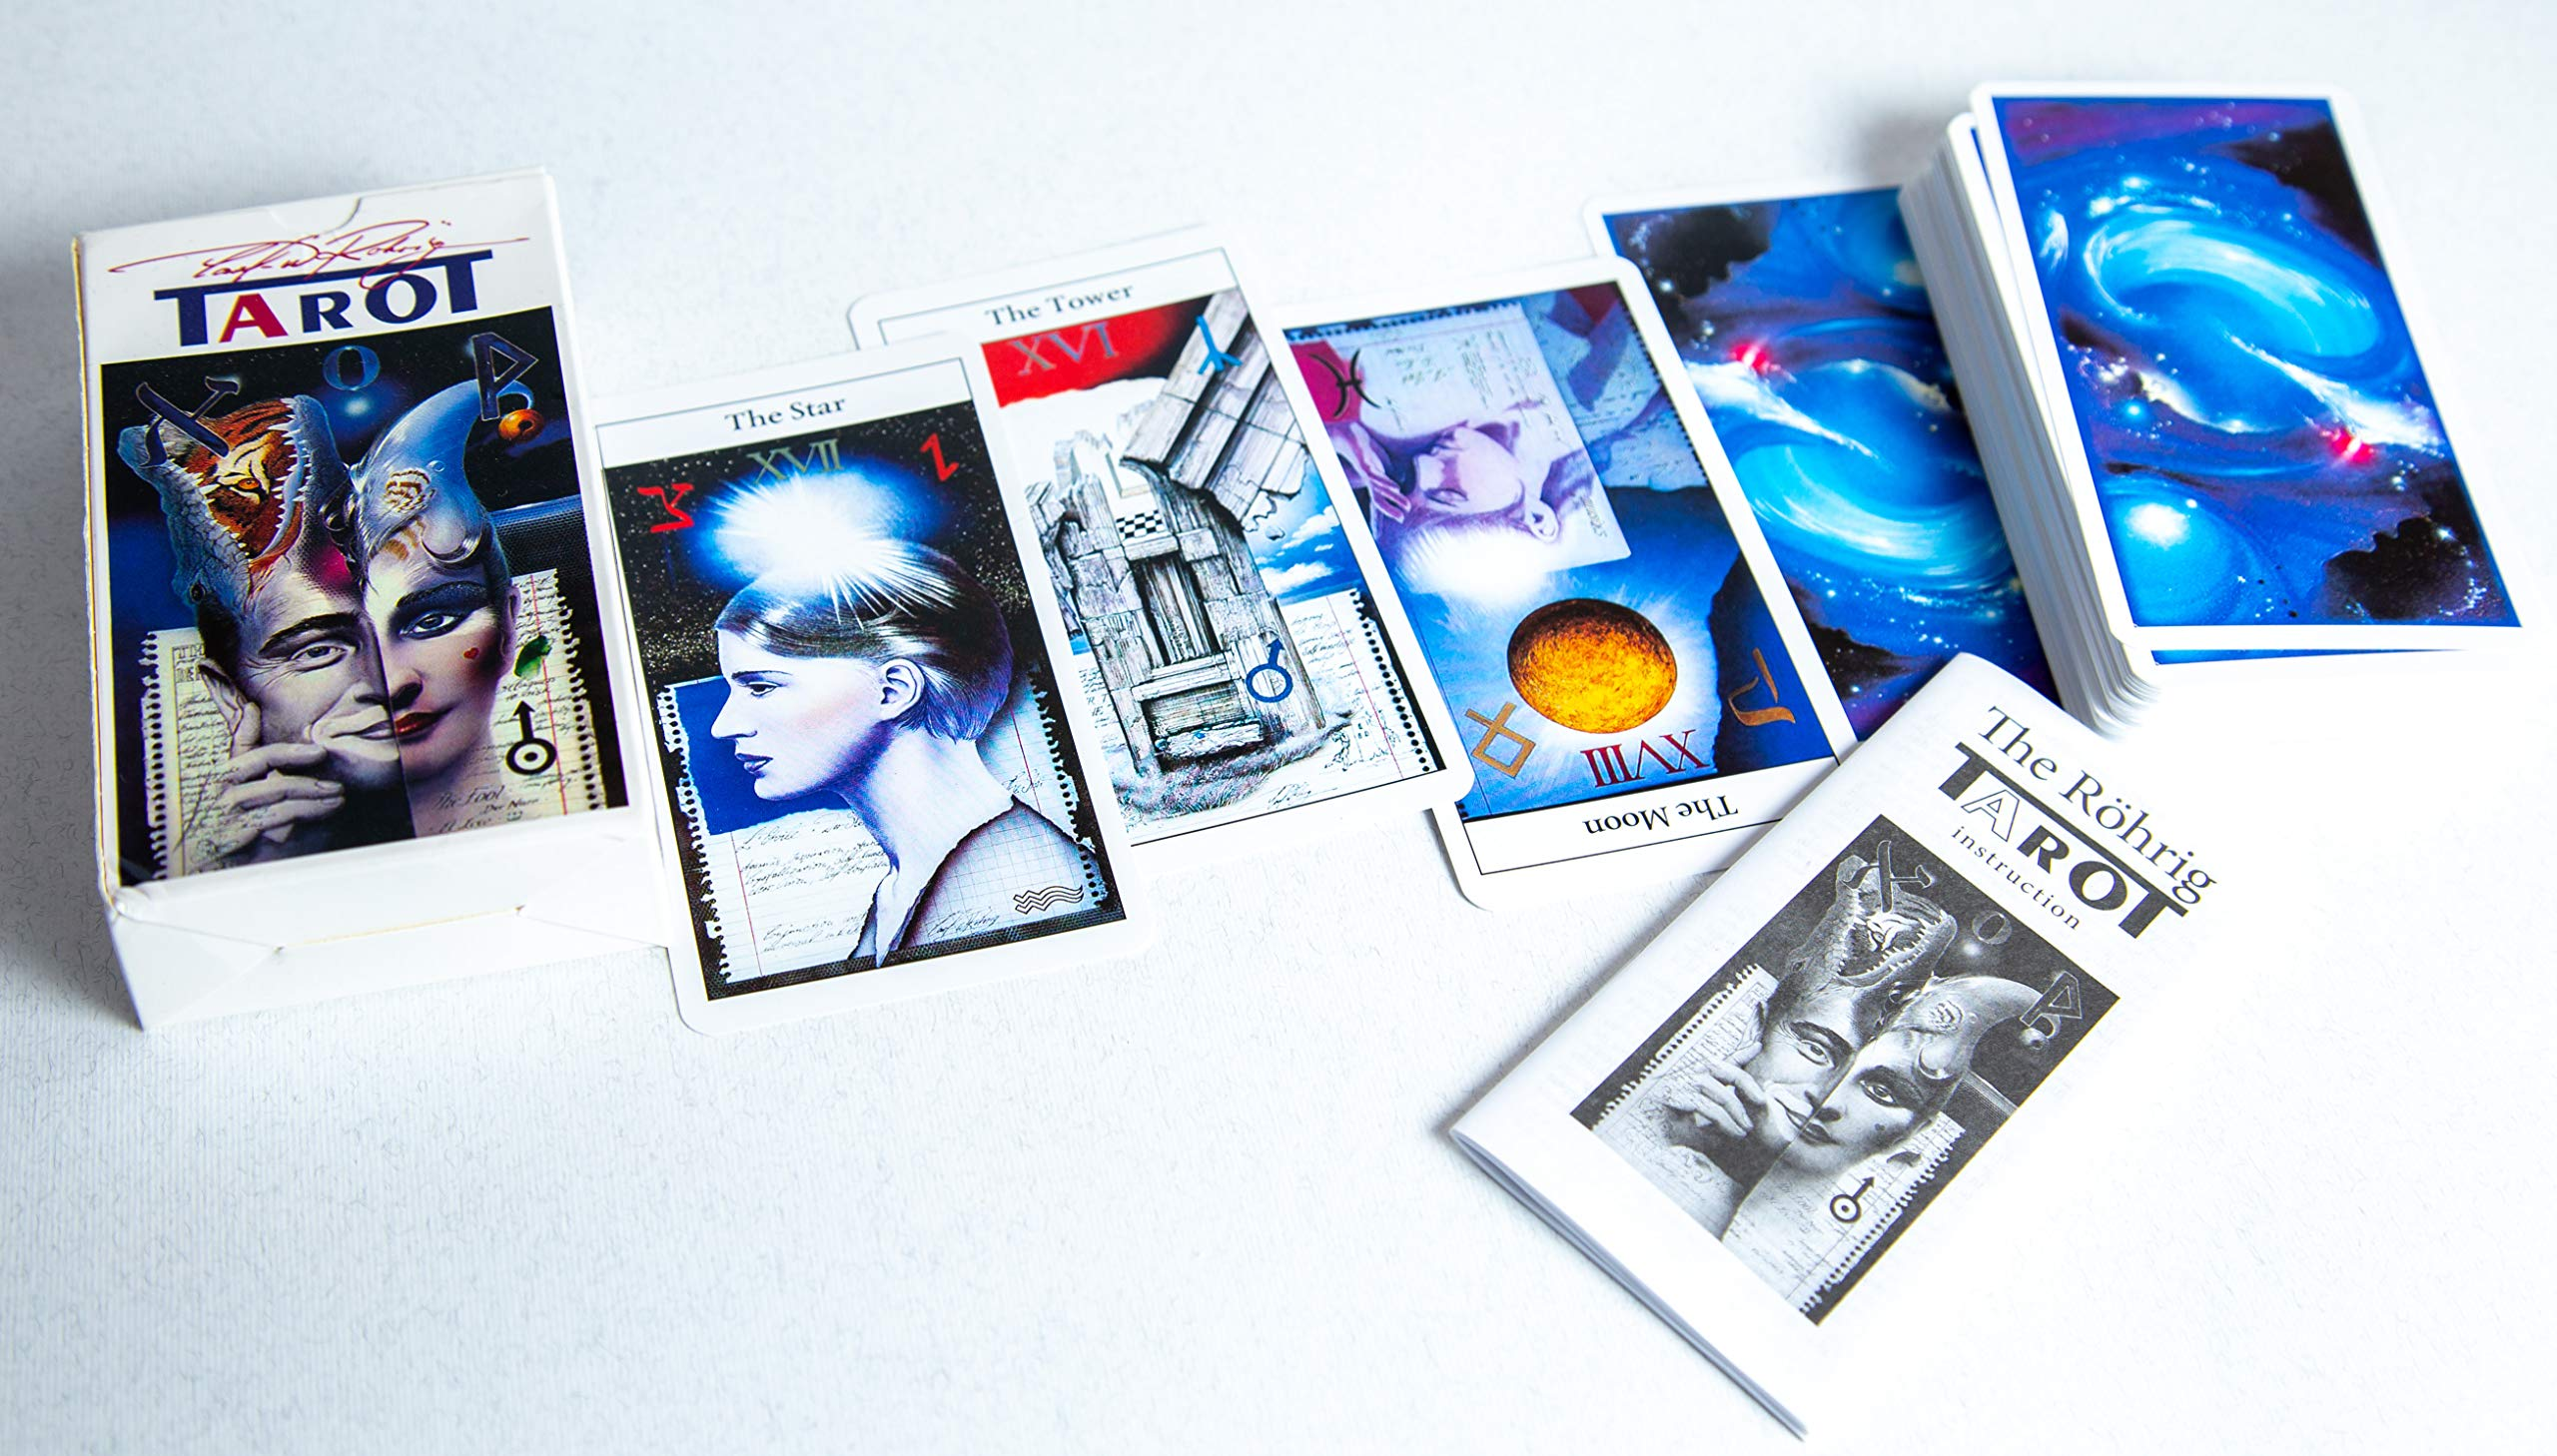 New 78 The Rohrig Tarot Tarot Cards Deck (Replica) Valentines Gift by Unknown (Image #5)